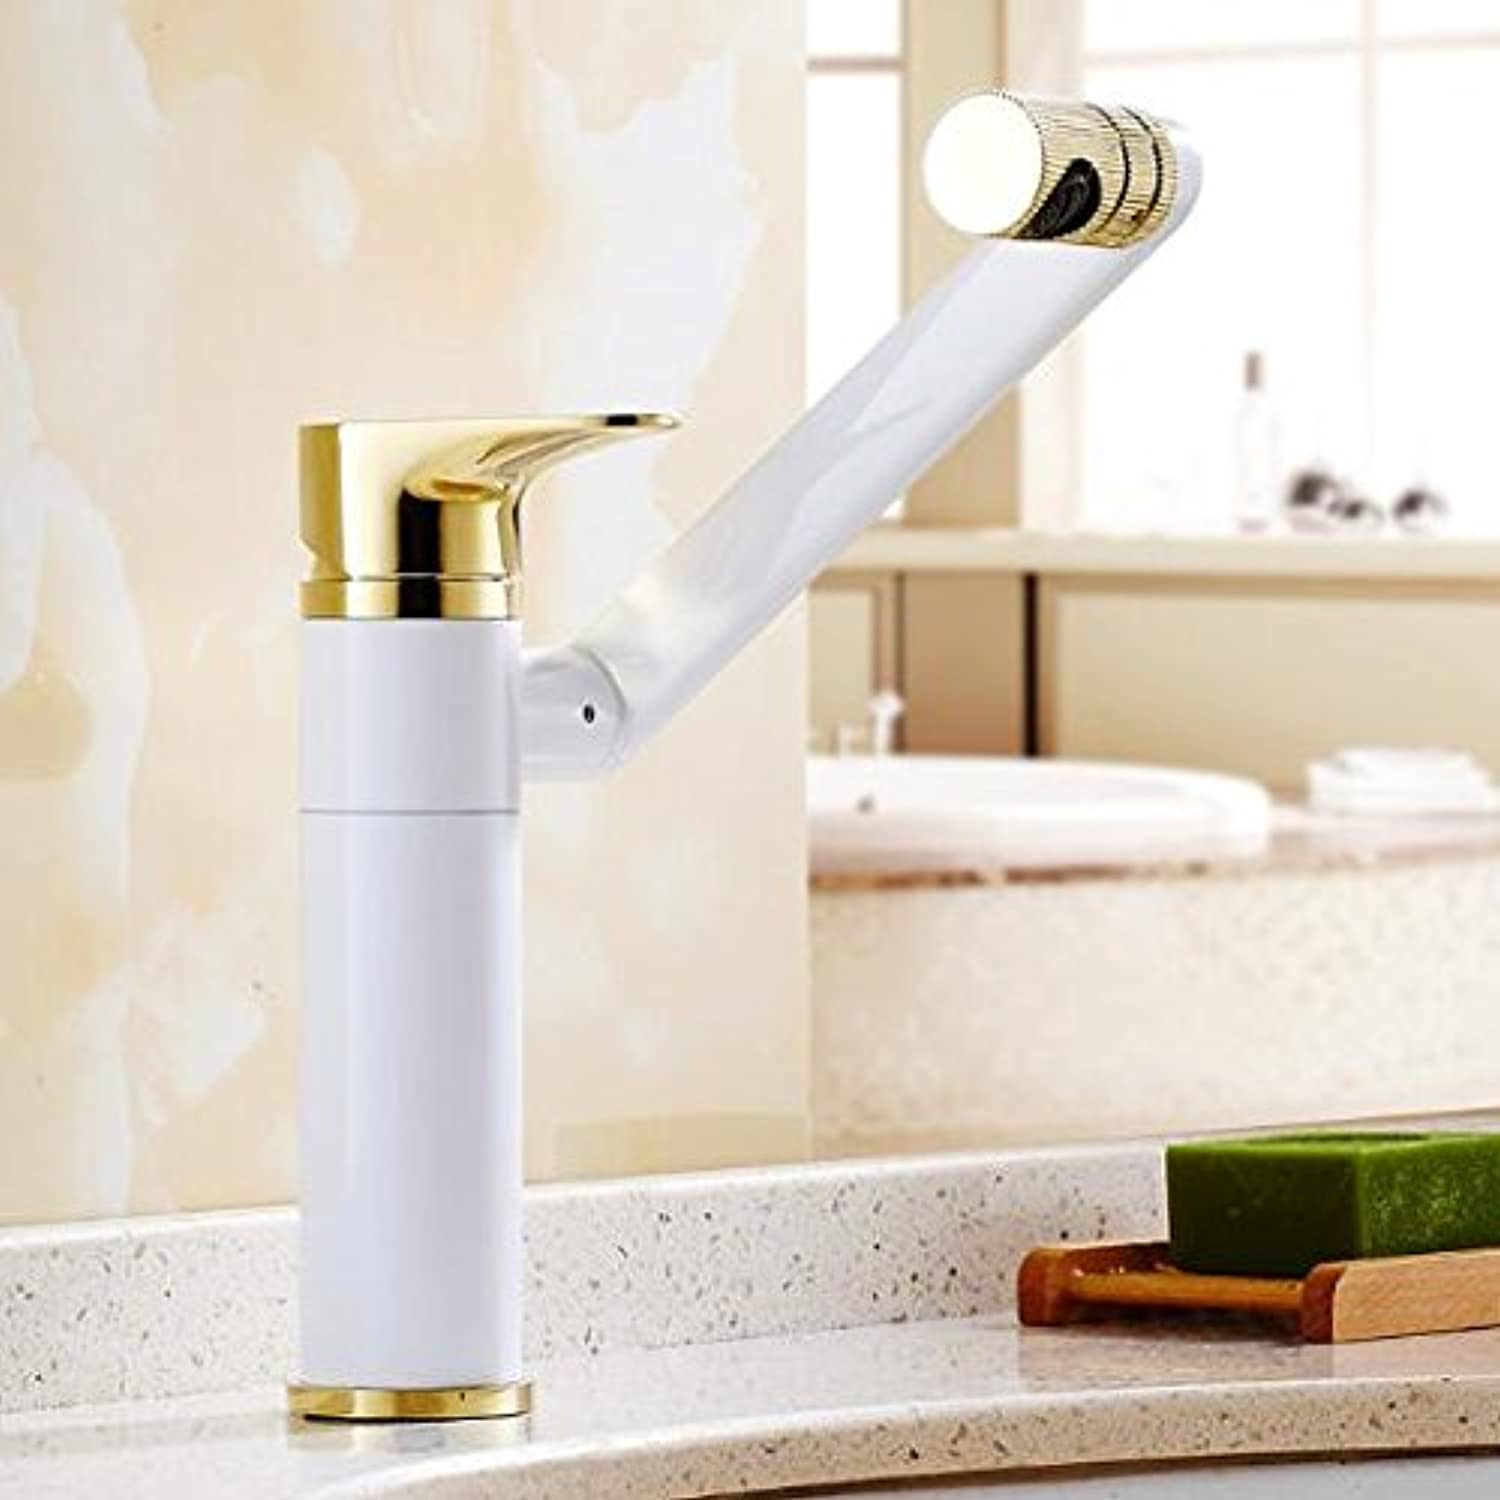 CZOOR New redating Basin Faucet Brass Bathroom Faucet Luxury gold and White Foldable Kitchen Sink Faucet Water tap Sink Faucet,Short